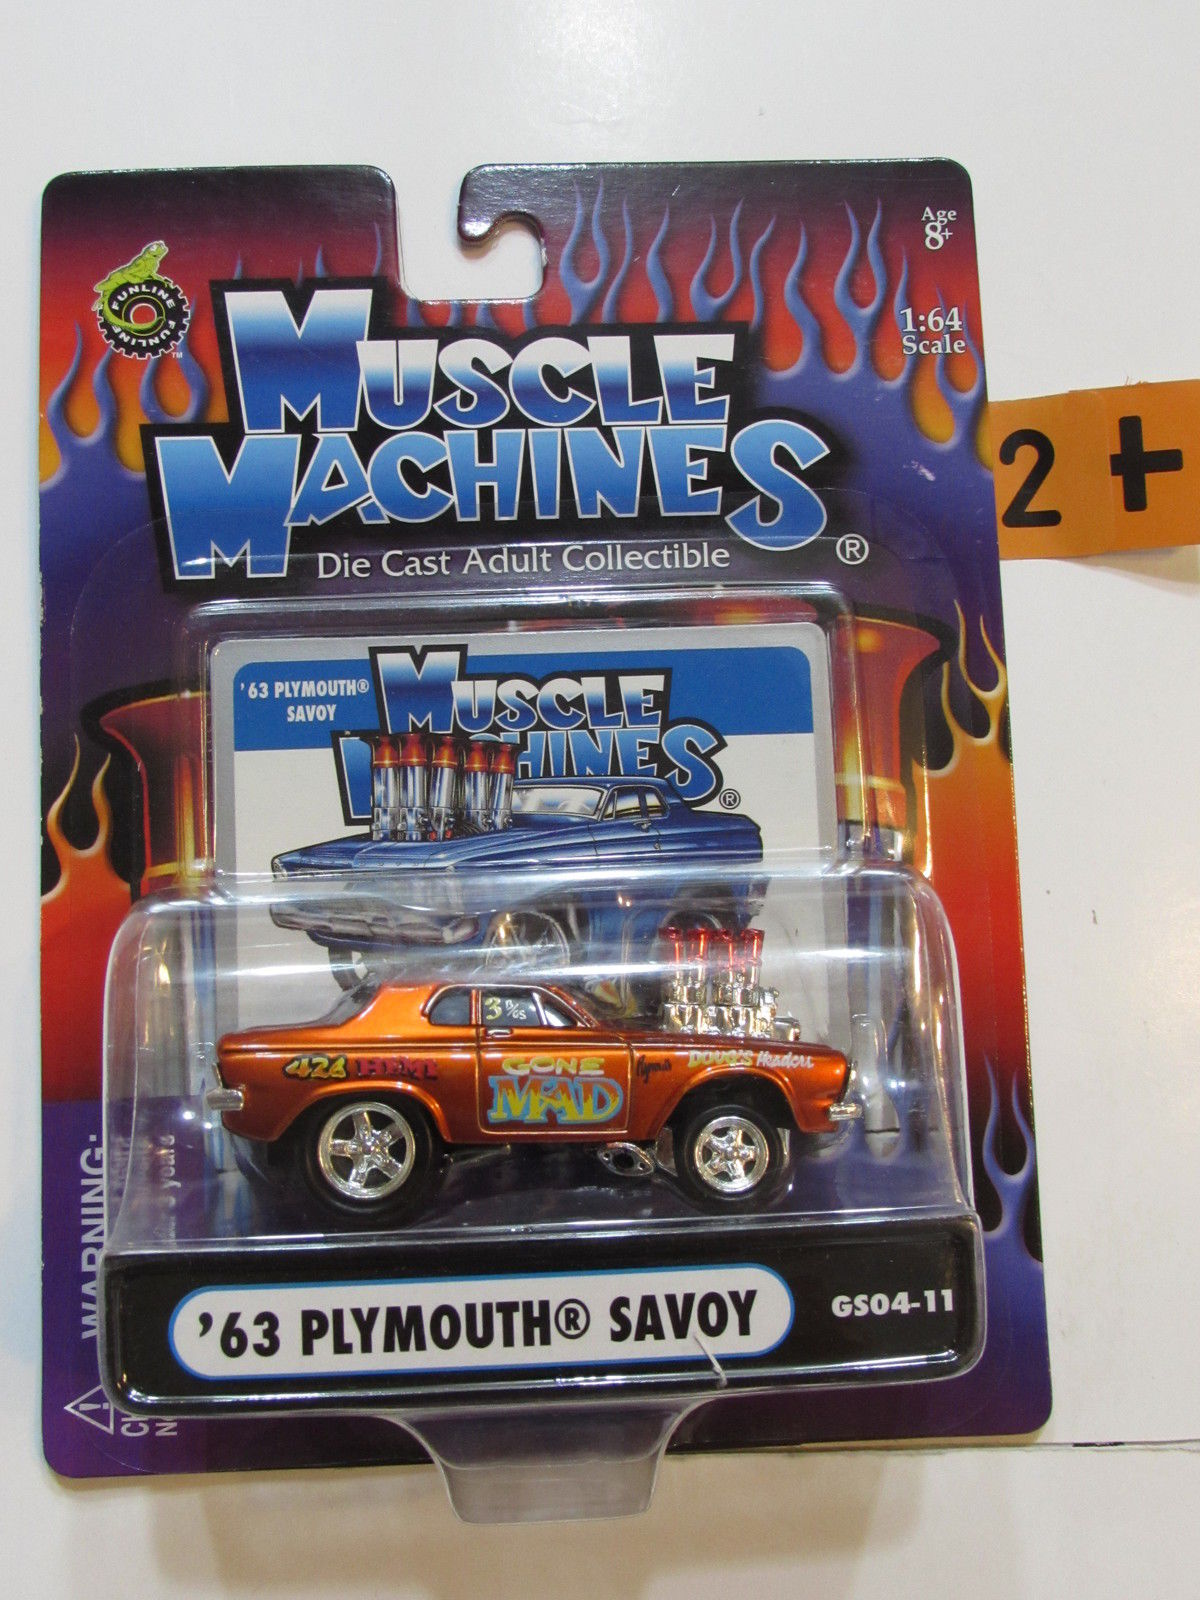 2004 MUSCLE MACHINES '63 PLYMOUTH SAVOY 1:64 SCALE